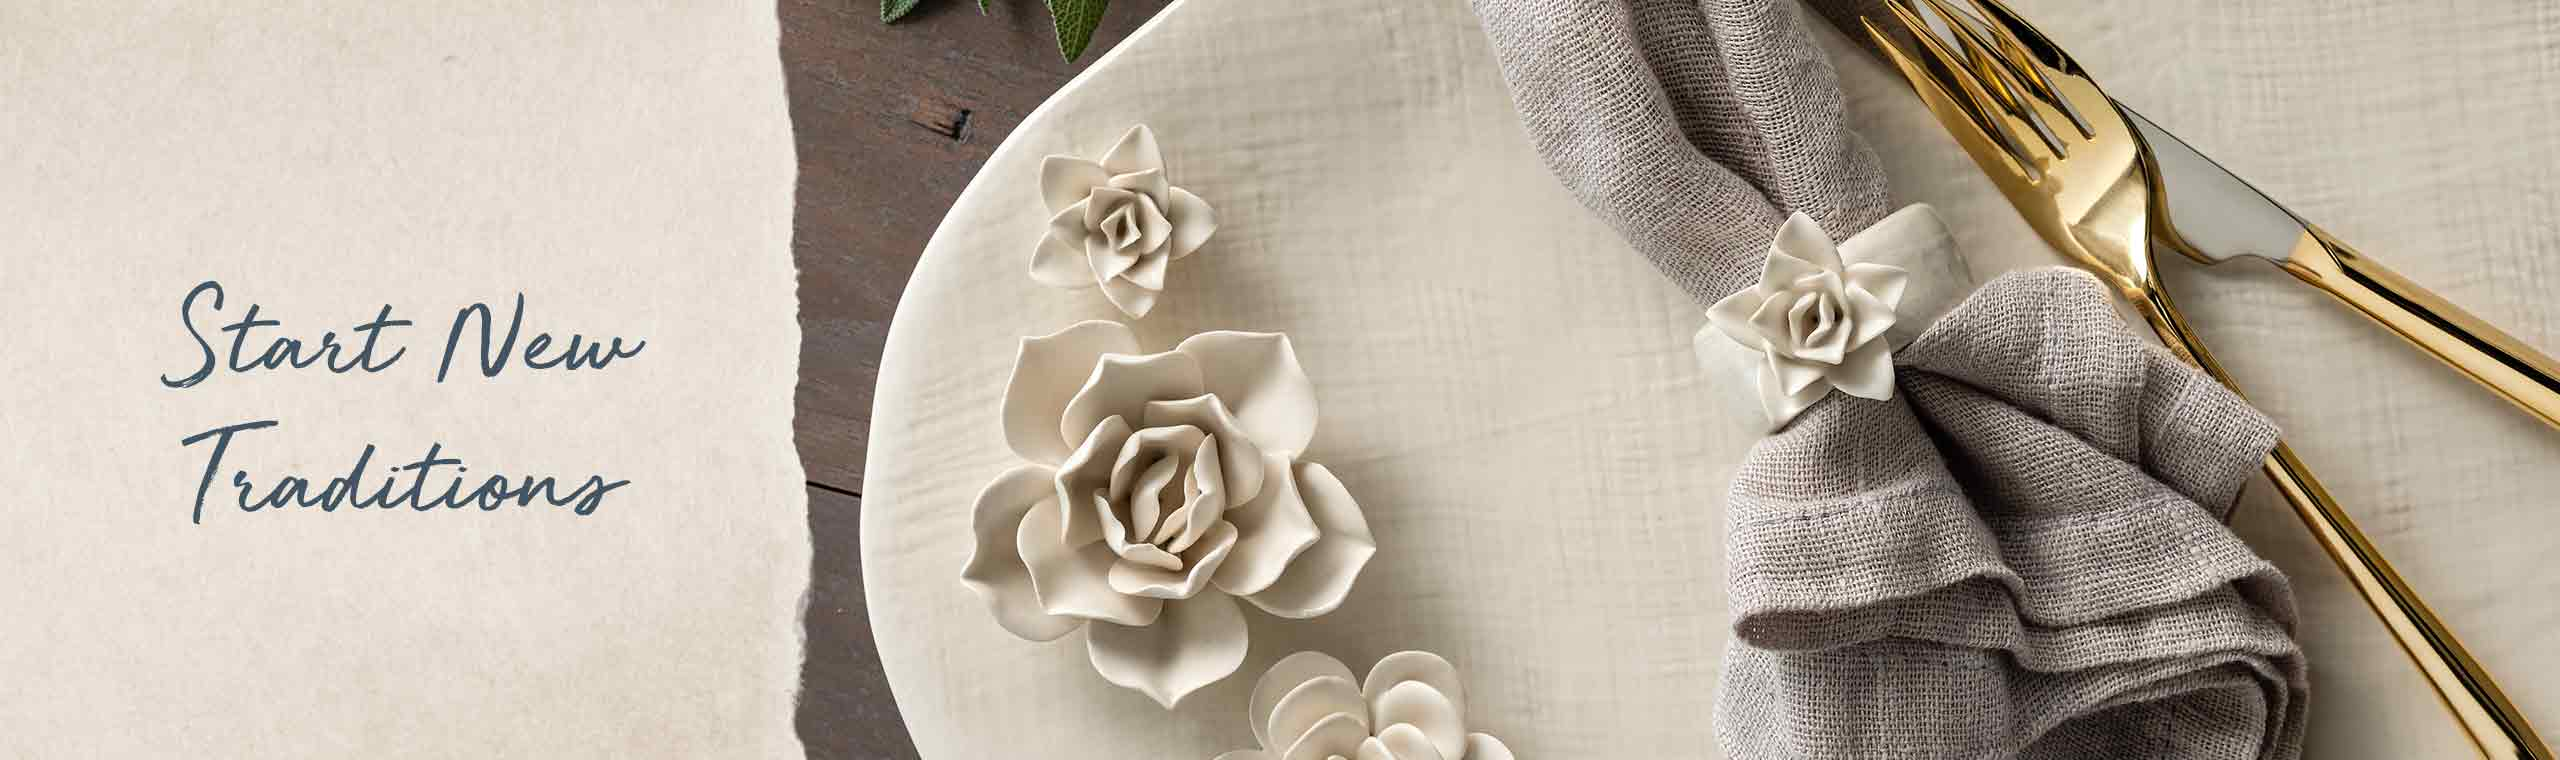 a ceramic plate with a napkin and silverware on top